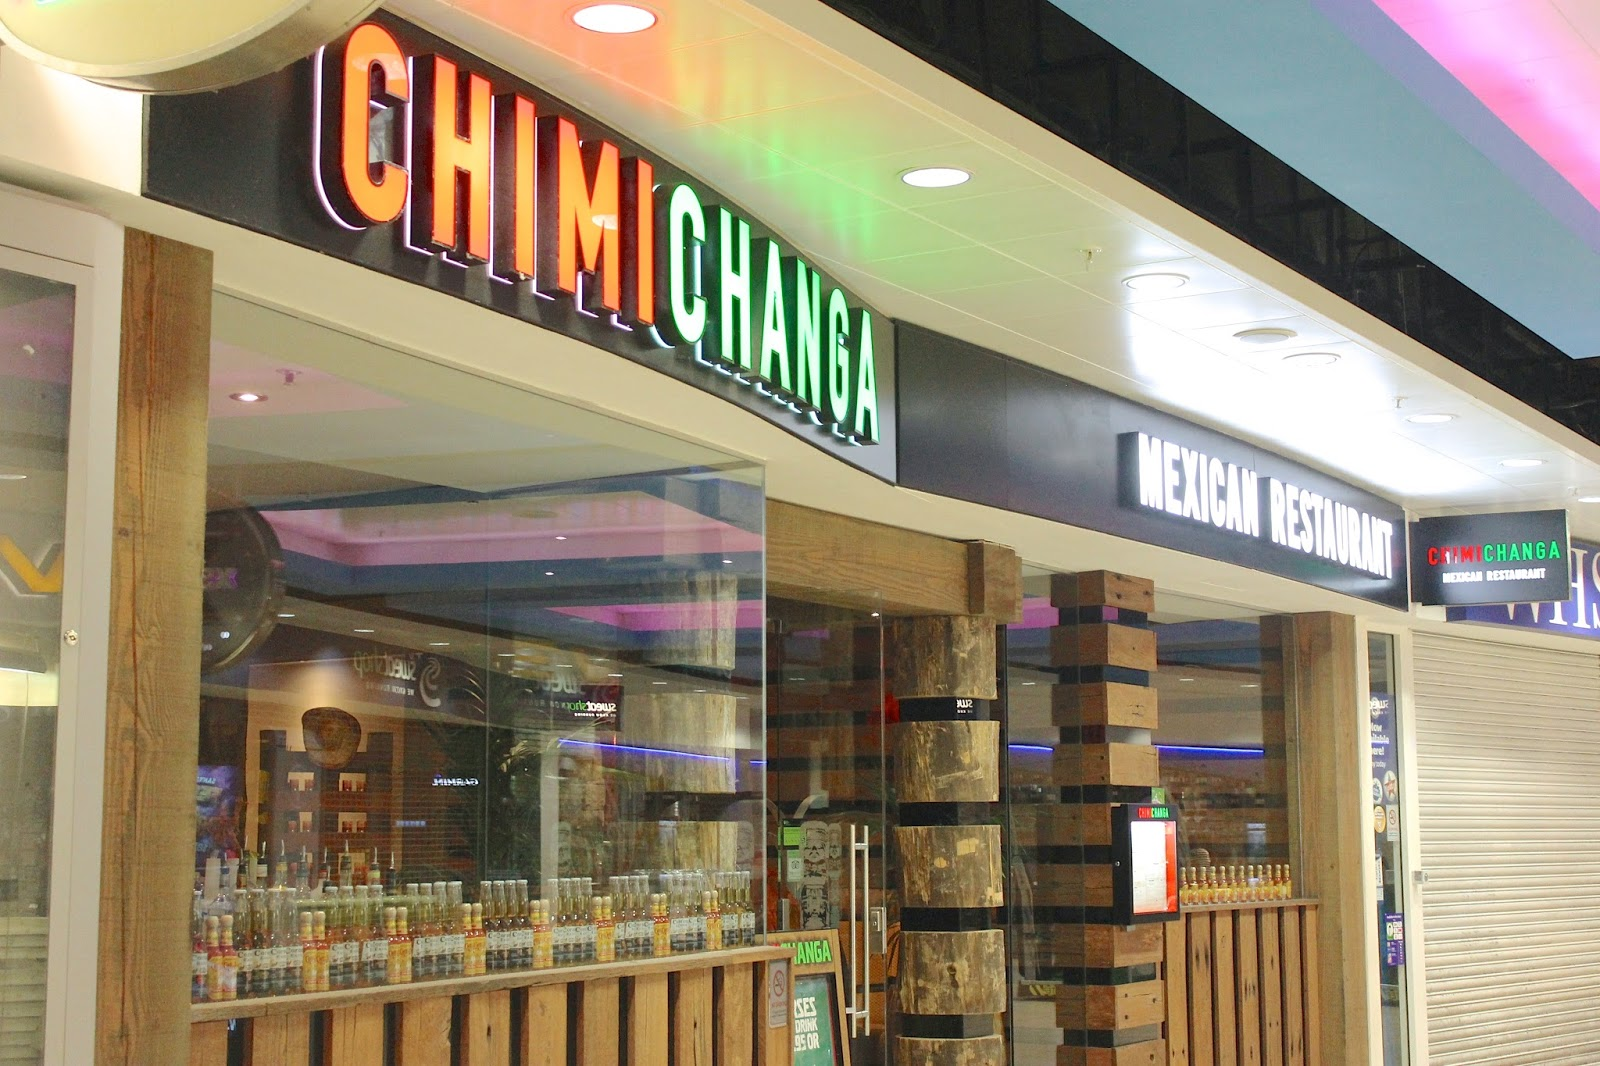 chimichanga review, chimichanga, chimichanga mk, chimichanga mk review, mexican mk, mexican restaurant mk